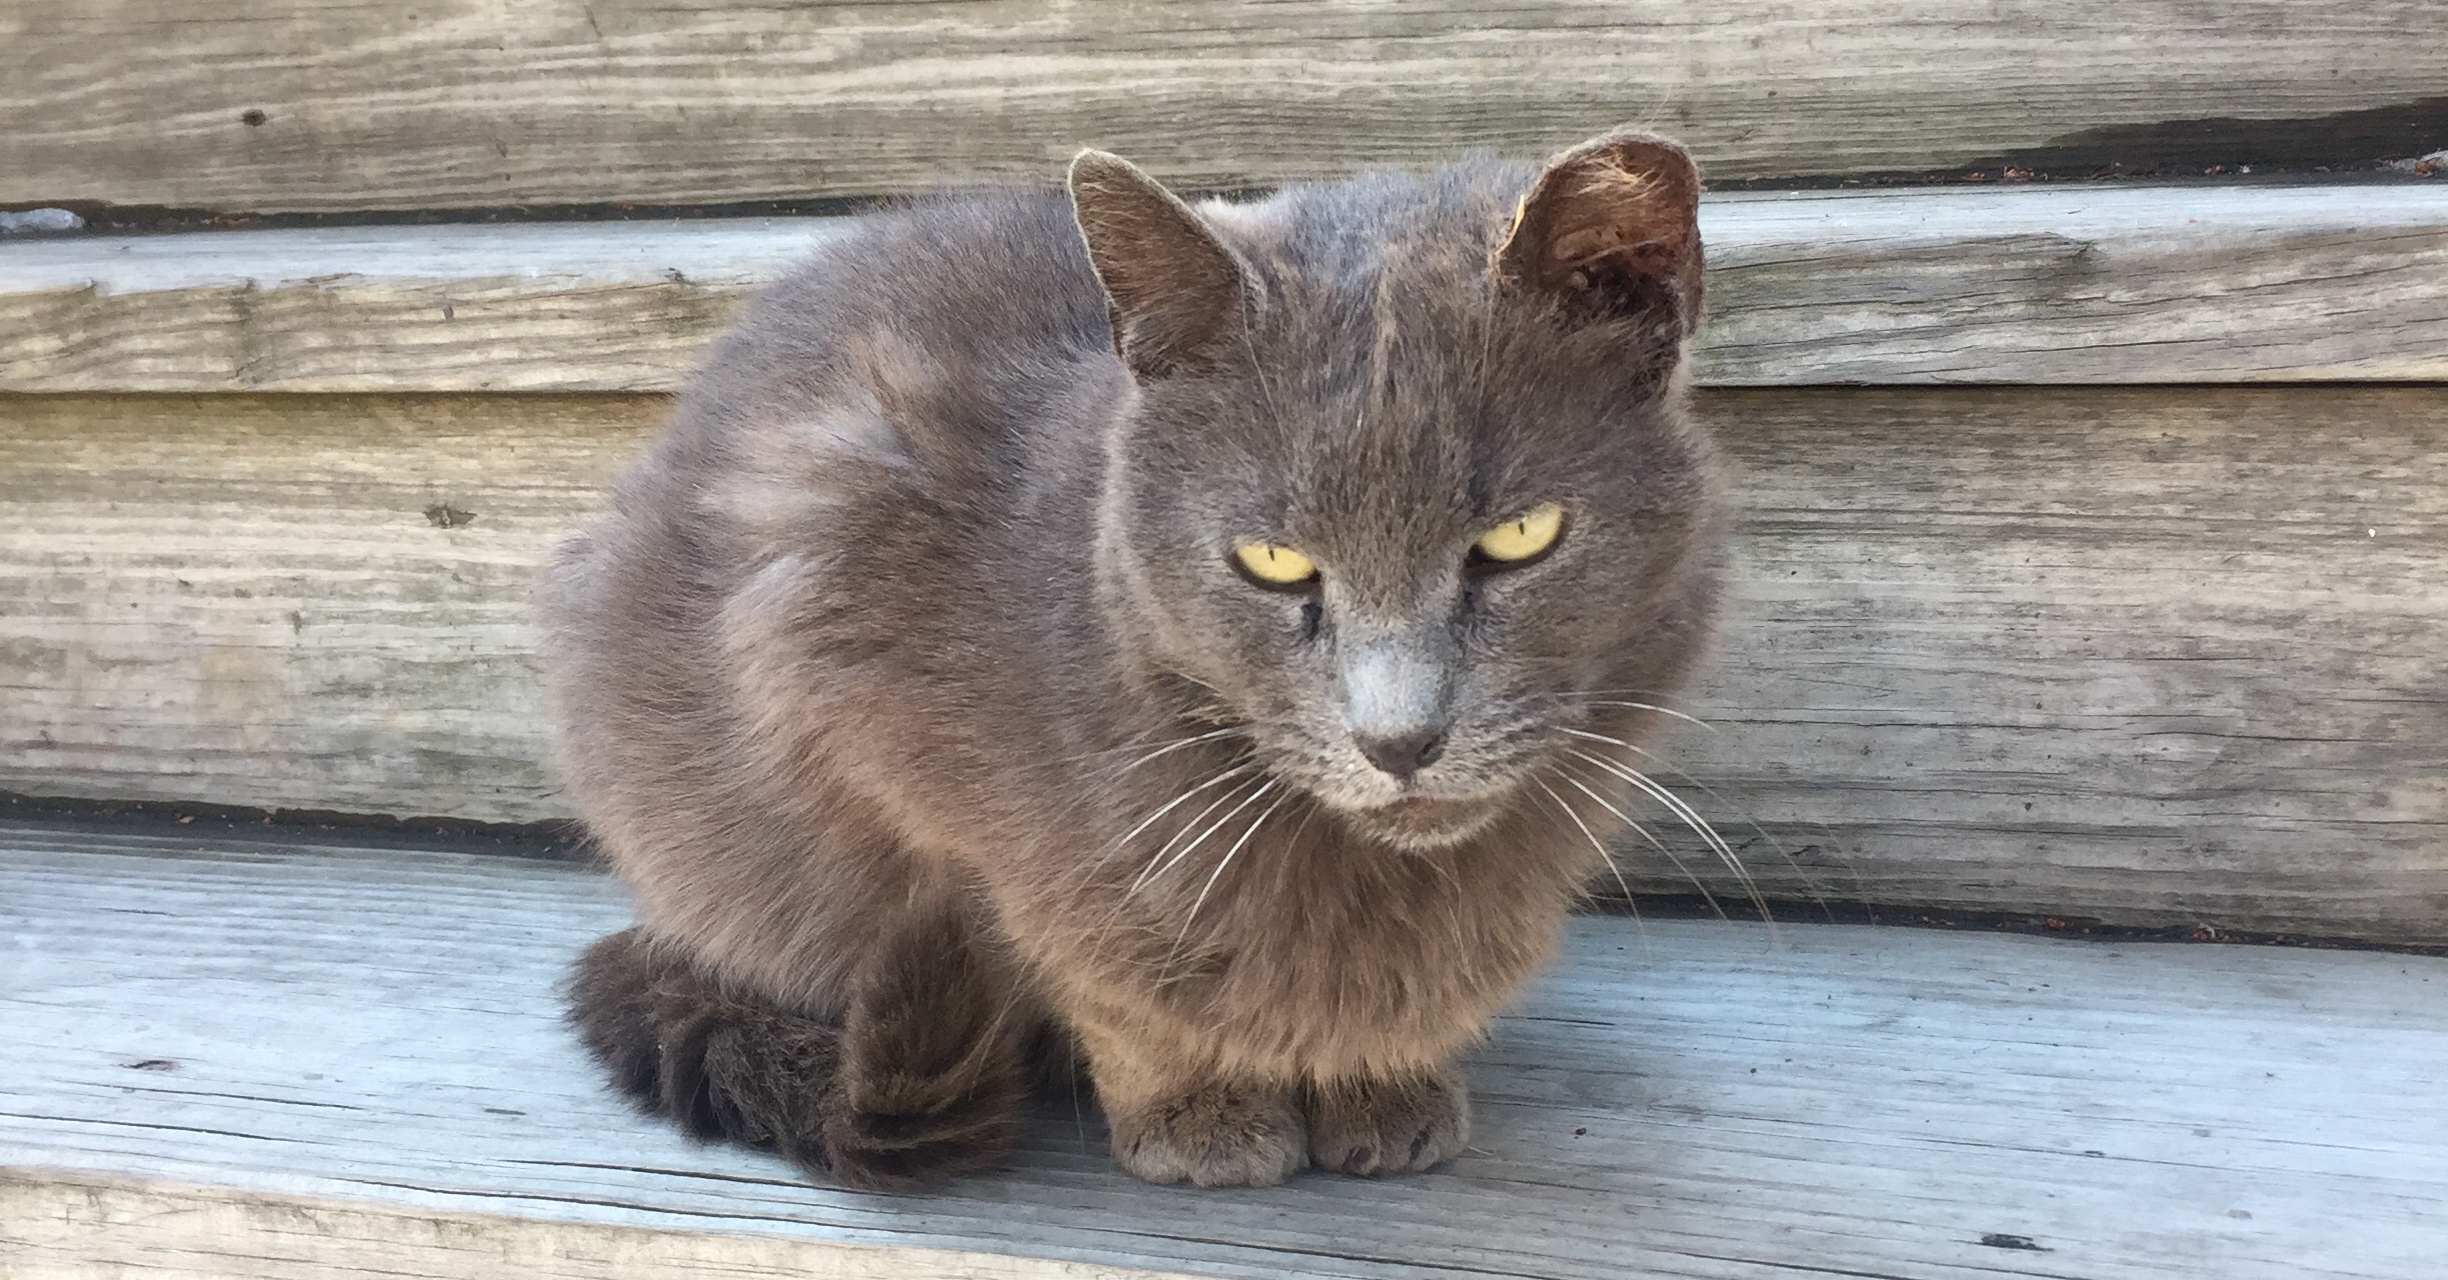 RIP Baby Gray The Cat with More Than an Infected Ear